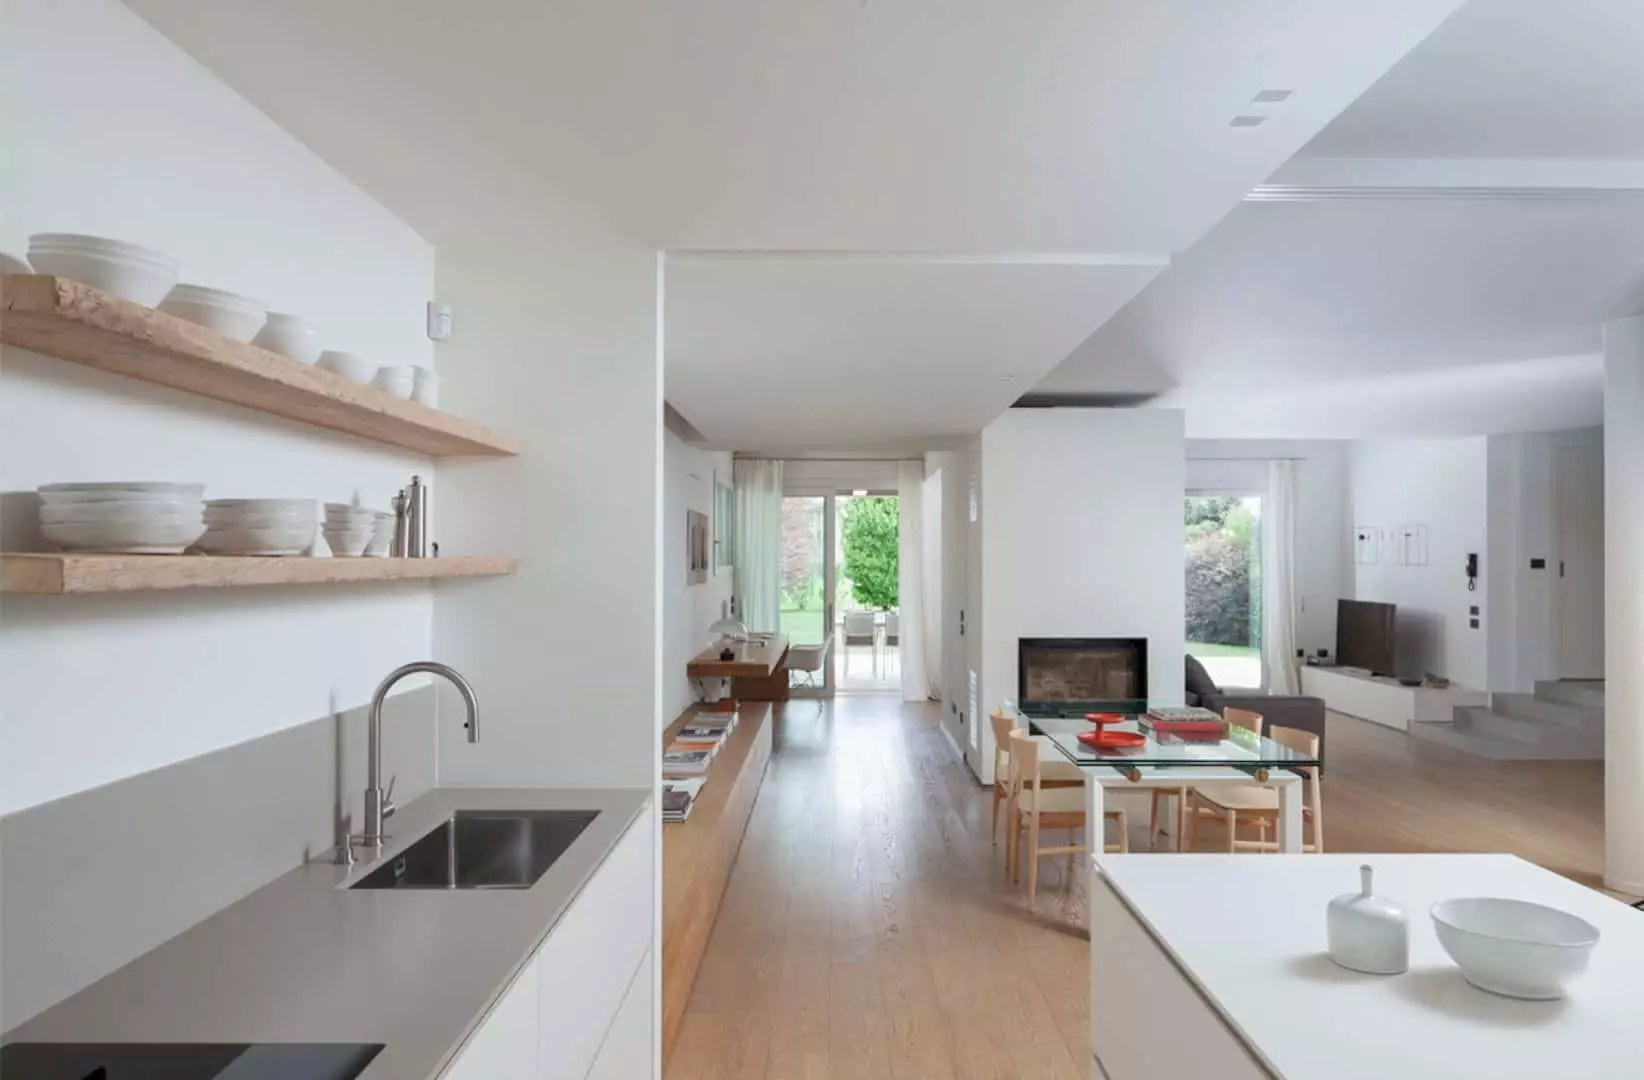 Interior SS: Modern Interior Design of A House with New Open Space ...